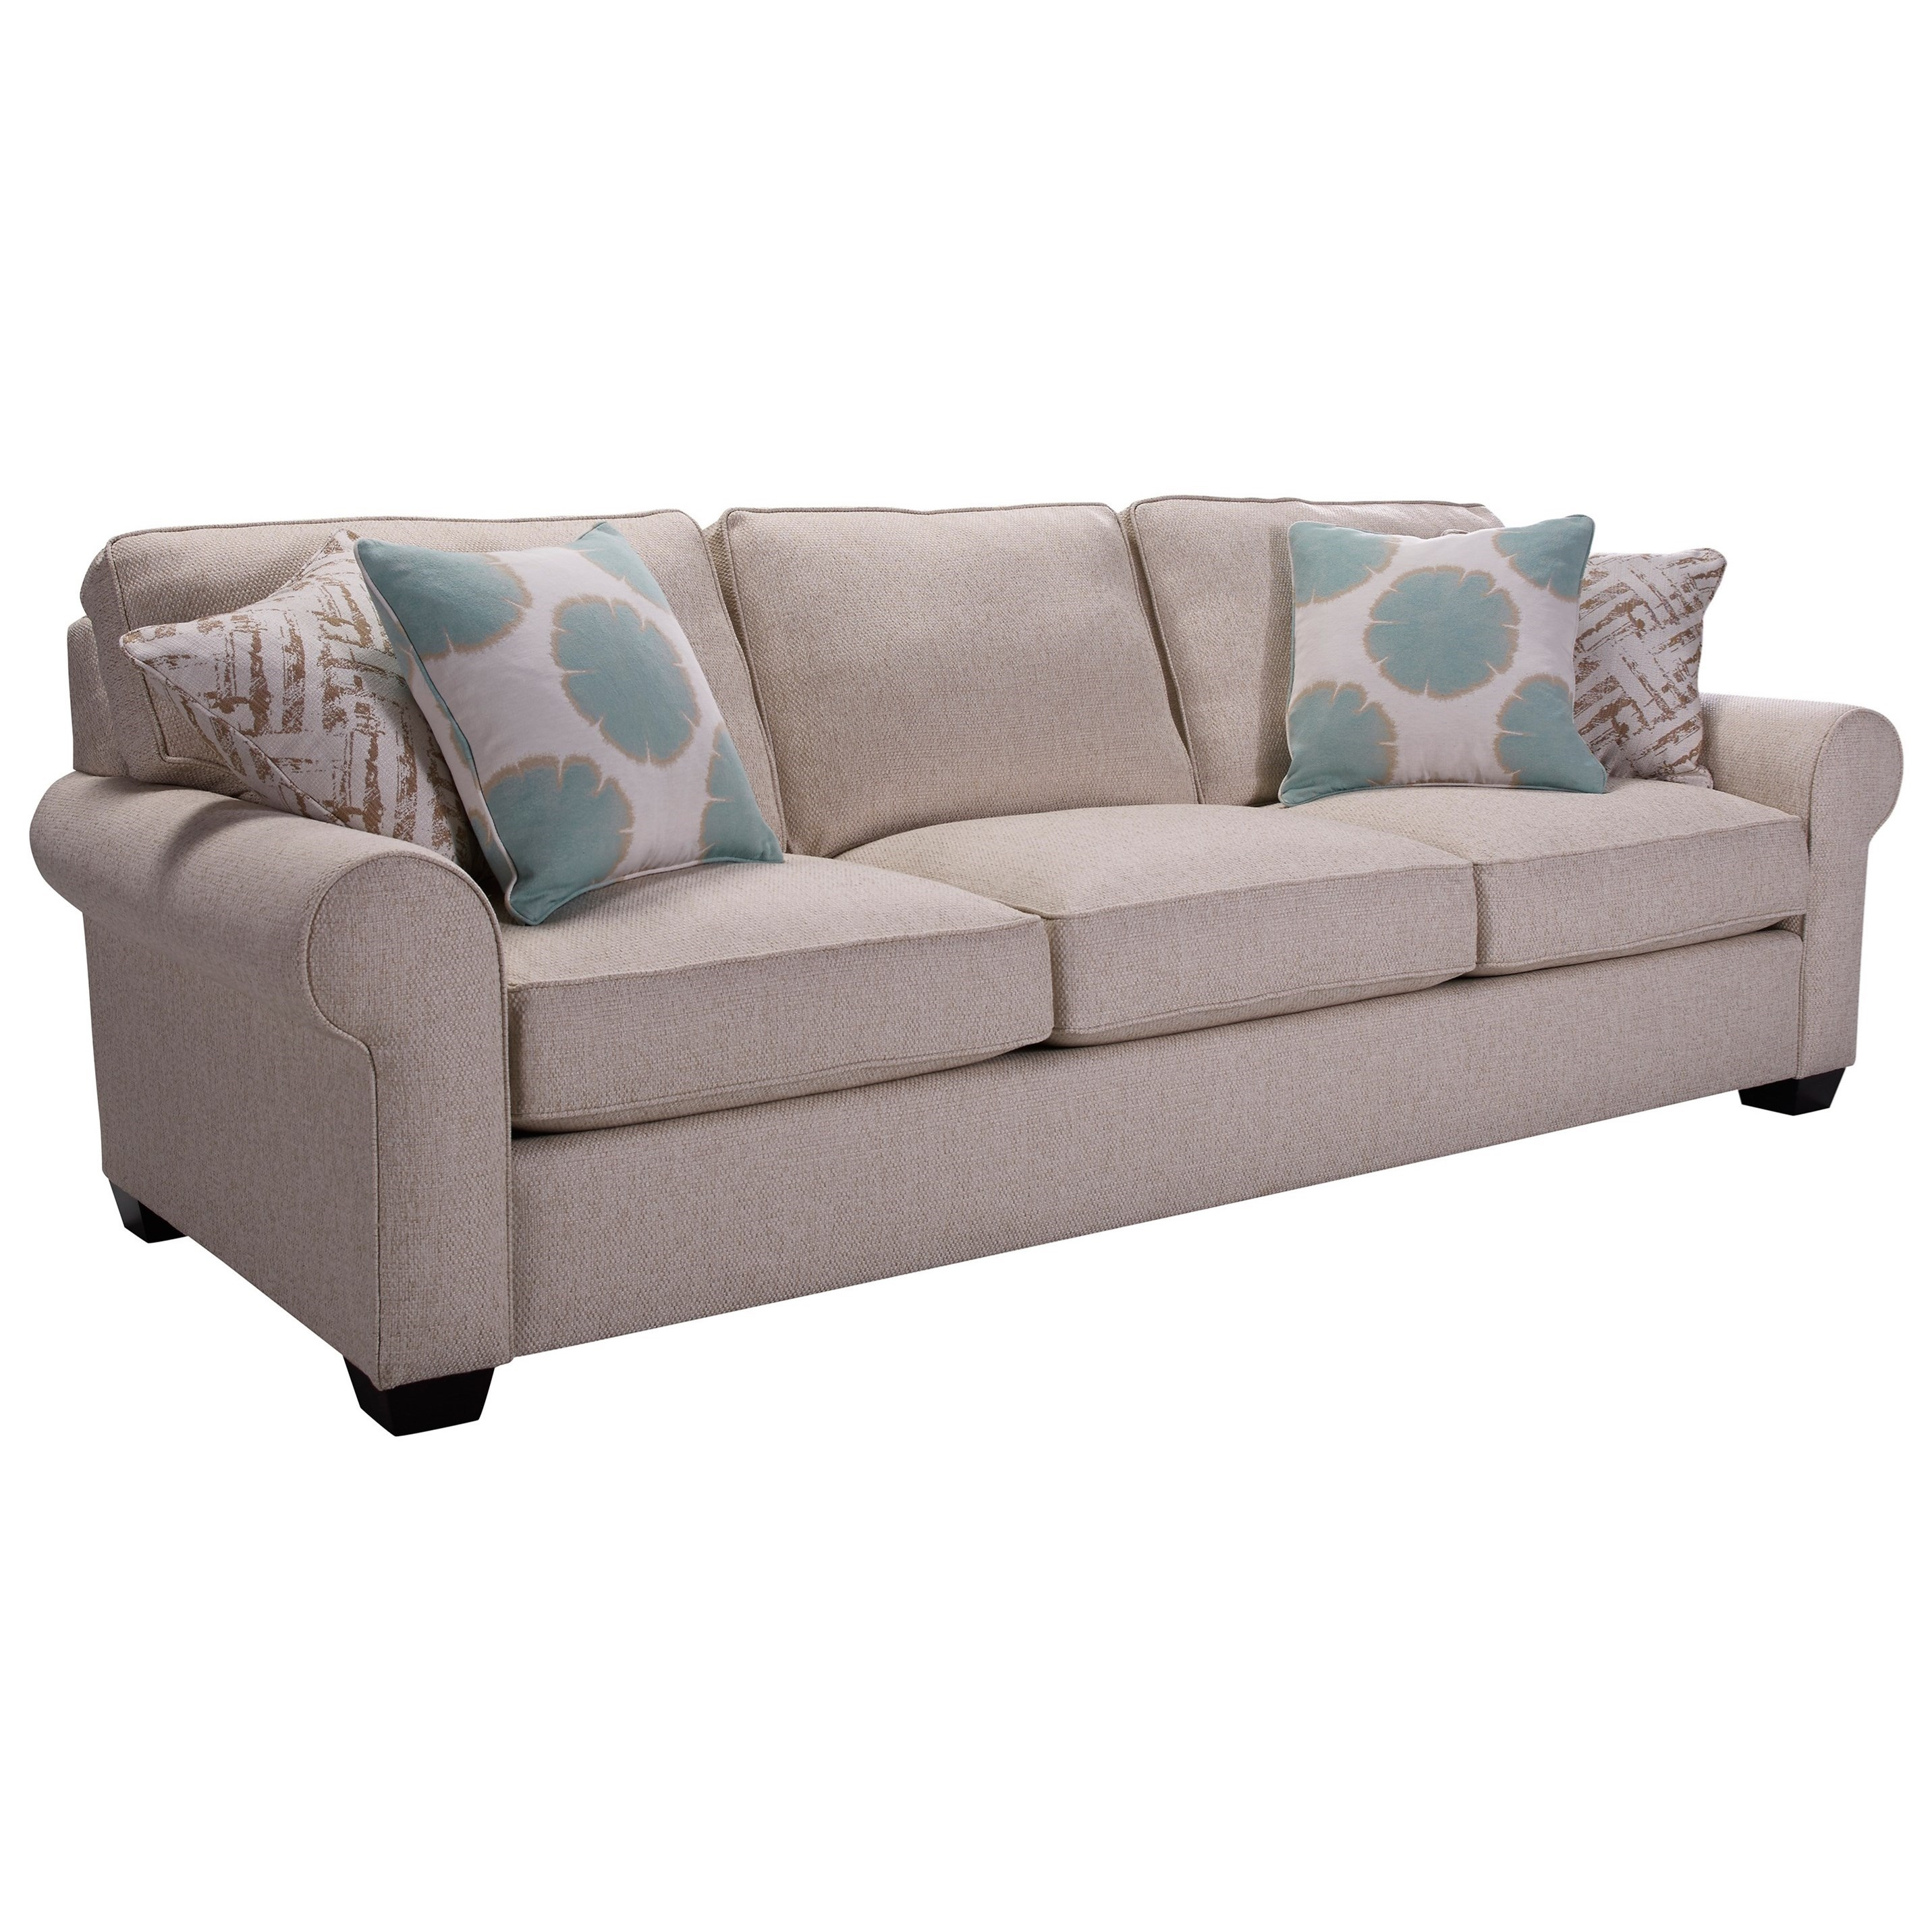 Broyhill Furniture Isadore Sofa - Item Number: 4272-3-4666-92